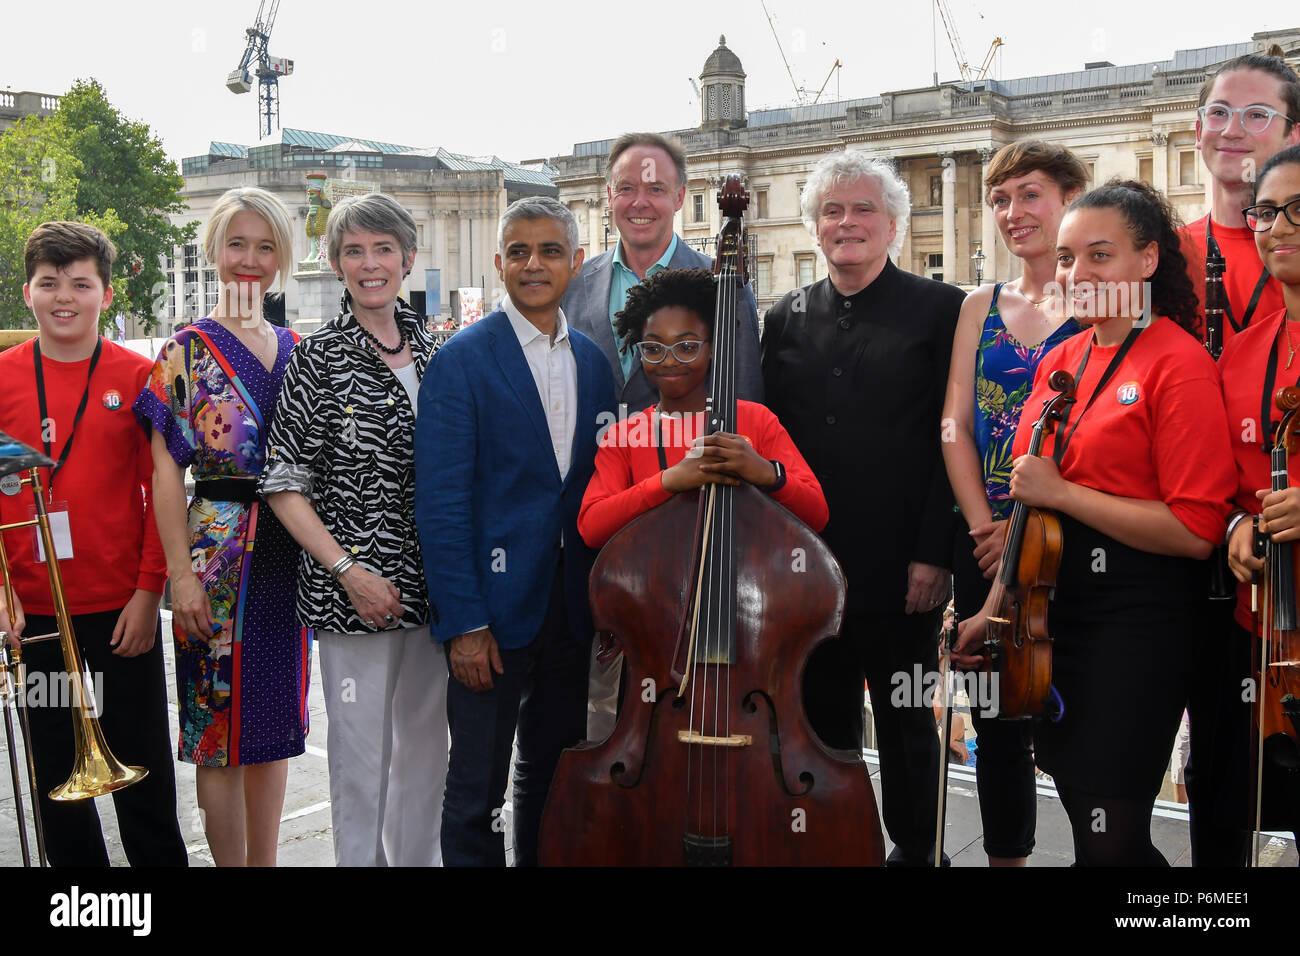 London, UK. 1st July, 2018. Photocall of Sadiq Khan,Sir Simon Rattle, Ian Robertson,Kathryn McDowell,KATE WHITLEY at the BMW Classics + live streamed on YouTube in Trafalgar Square on a hot weather in London, UK on July 1st 2018. Credit: Picture Capital/Alamy Live News - Stock Image